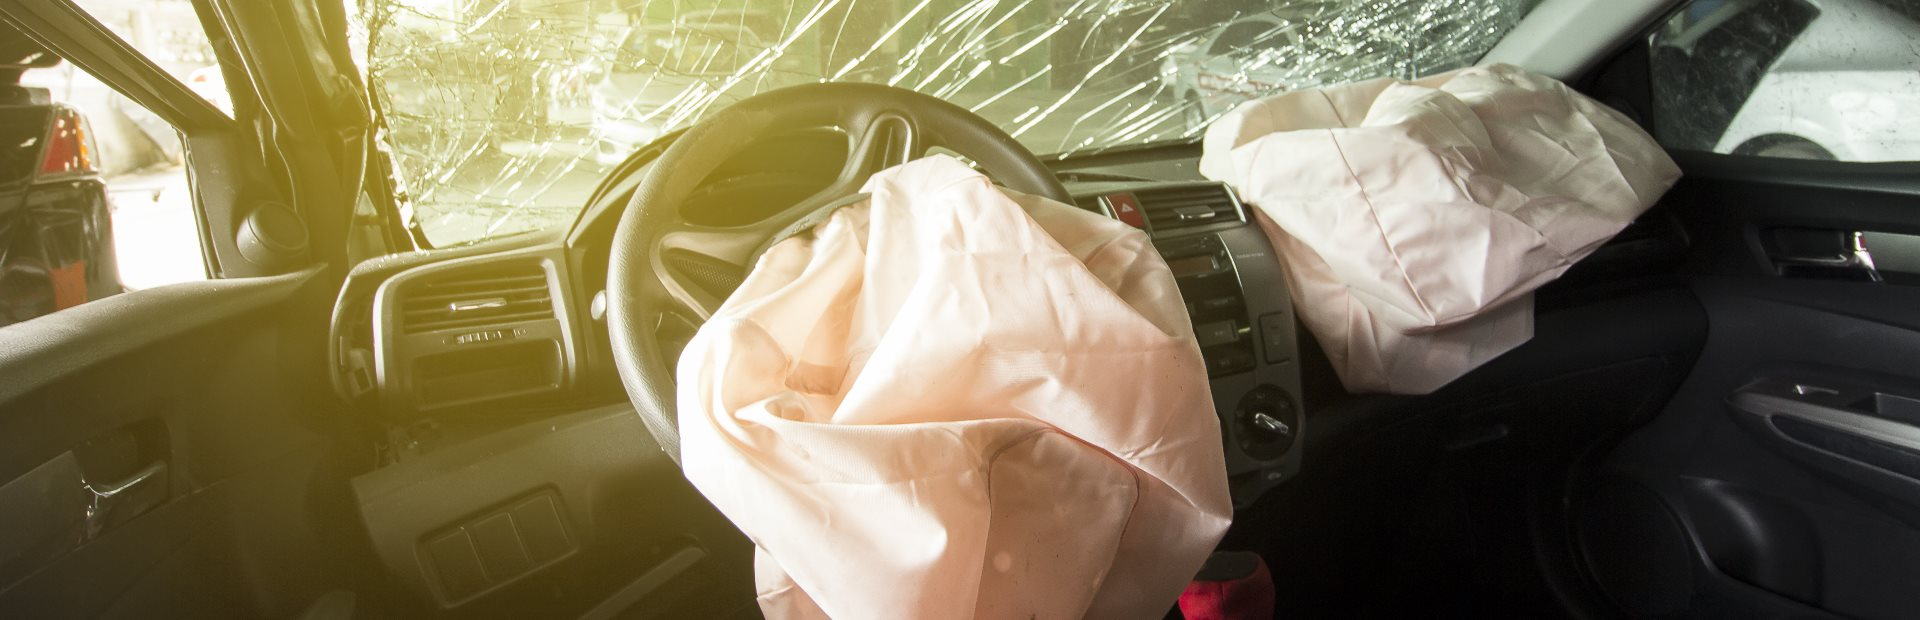 airbag recall, product liability